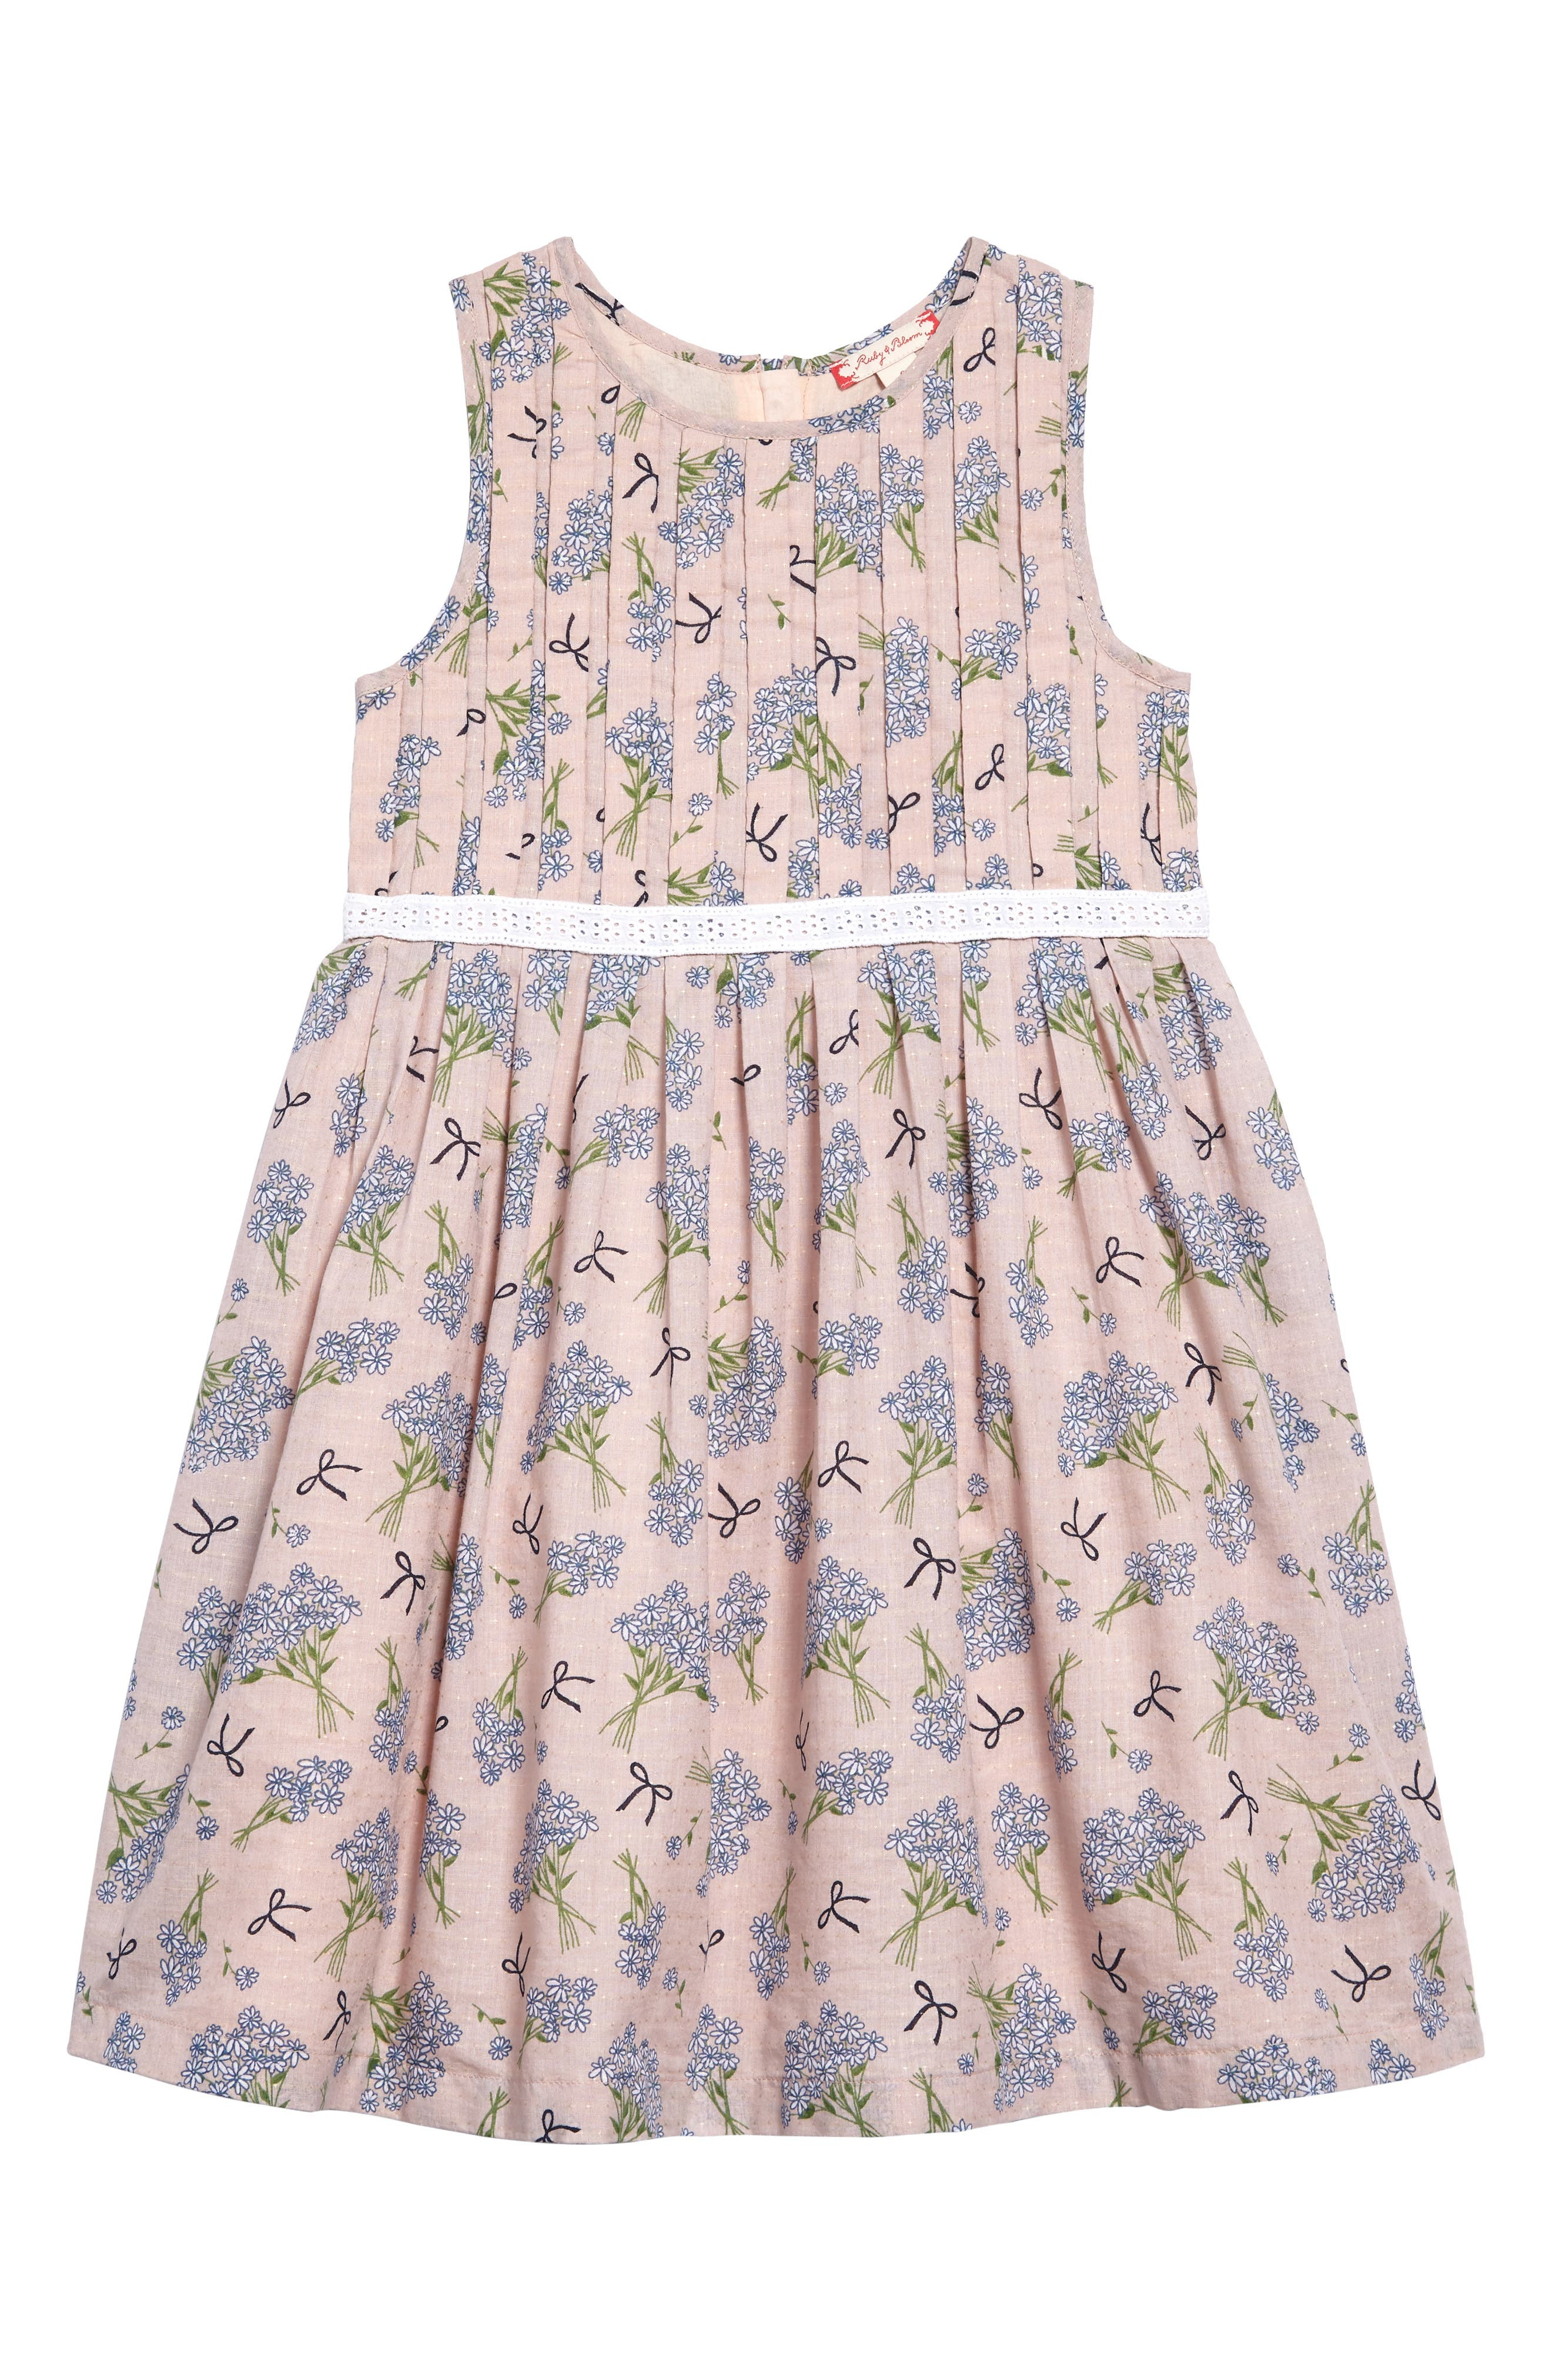 Dobby Floral Pleat Dress,                         Main,                         color, Pink Peach Spring Floral